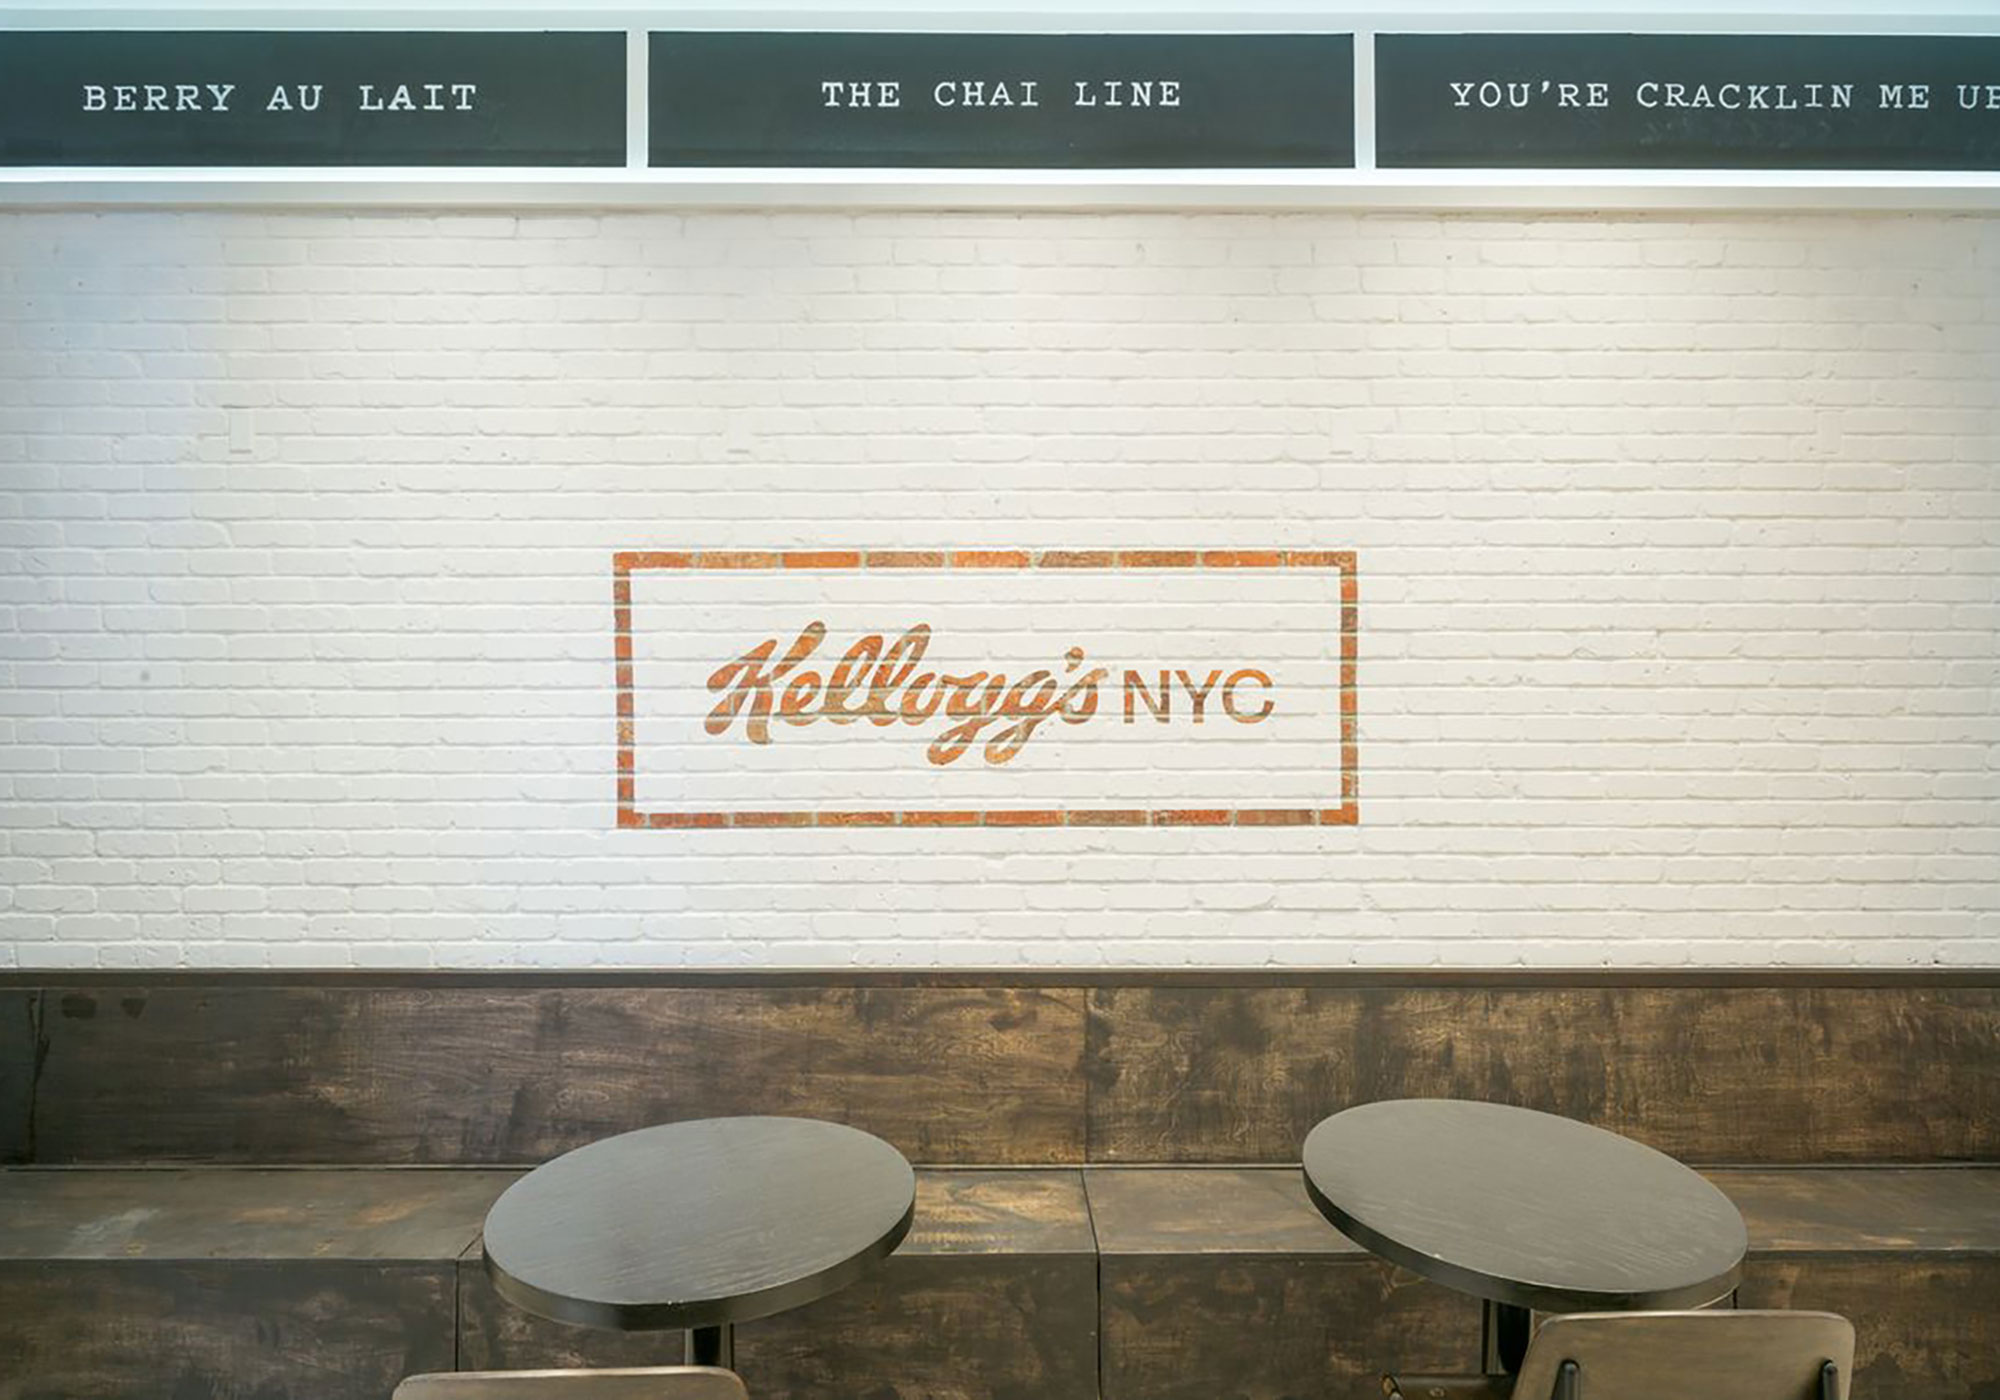 Wall with Kellogg's logo painted on it